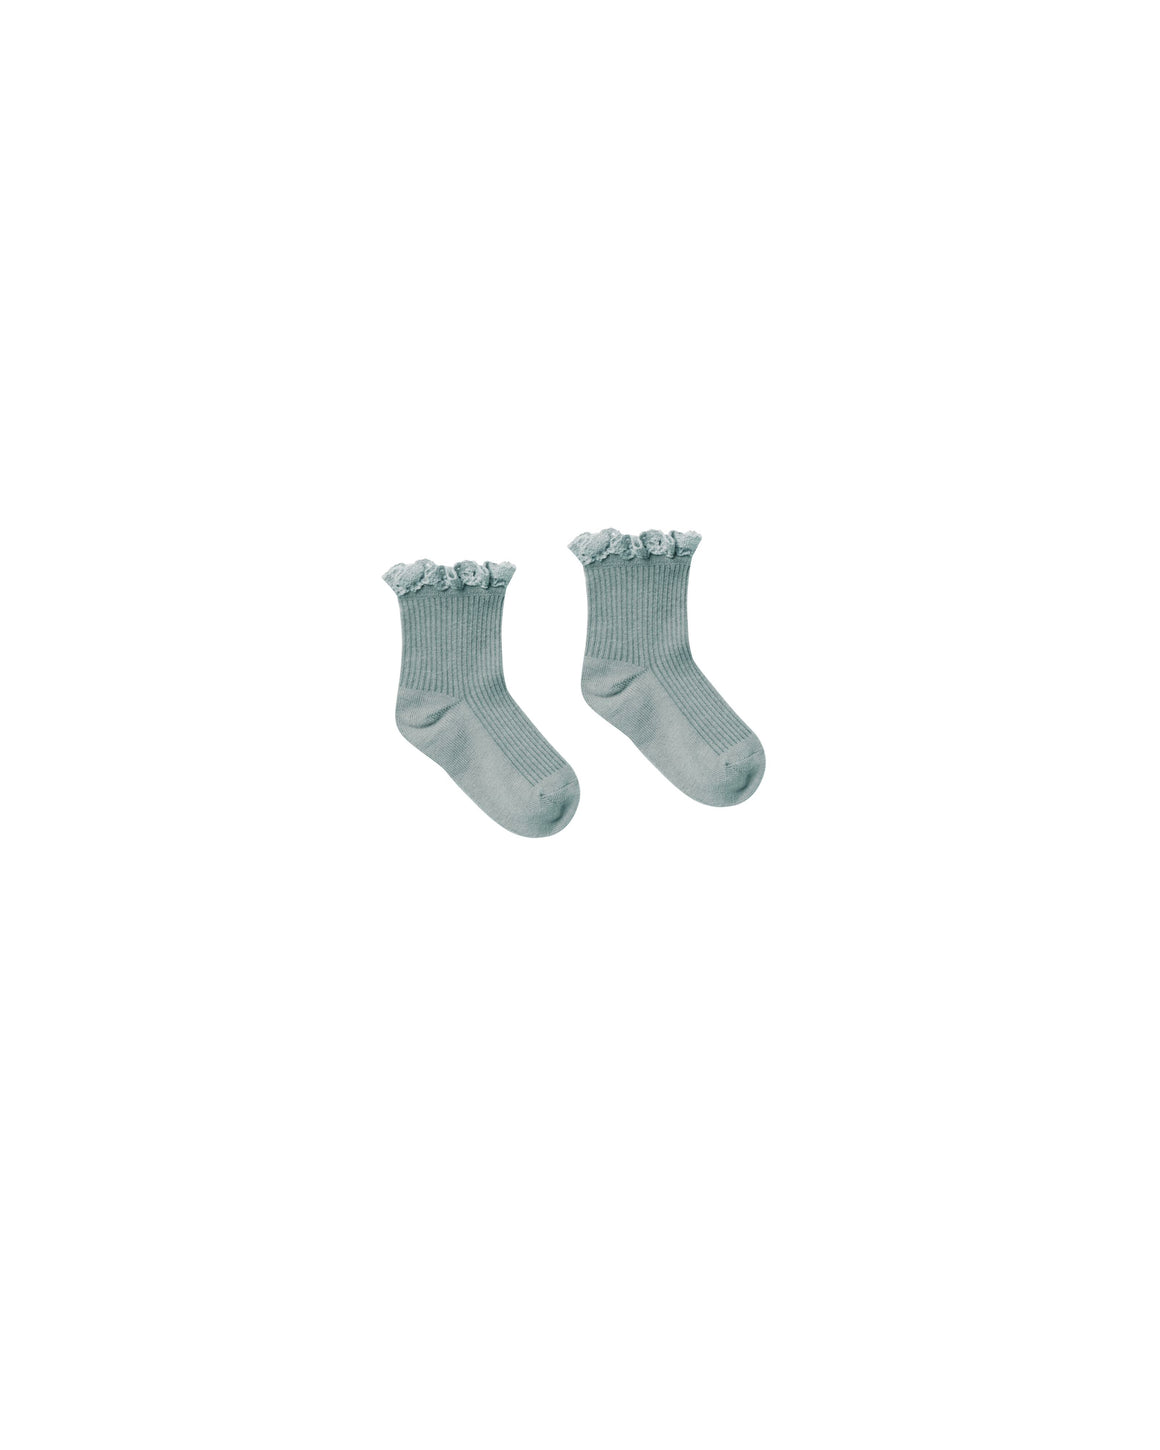 Children's lace trim ruffle ankle socks in sea blue